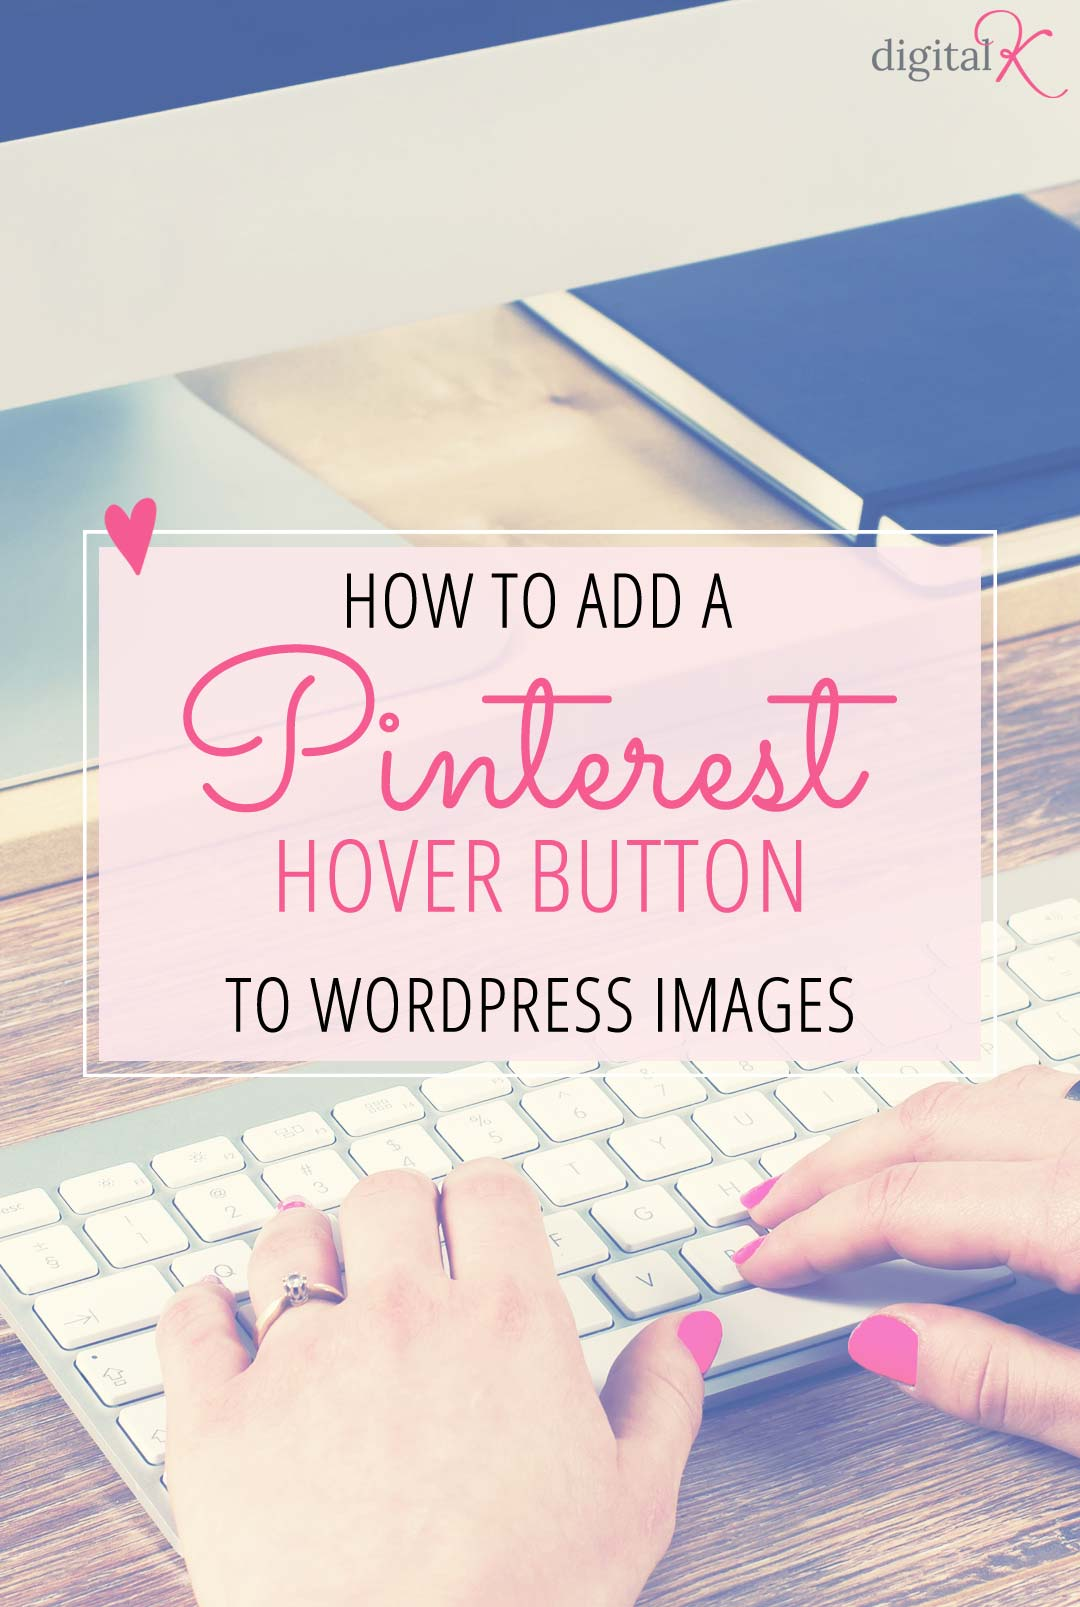 How to Add a Pinterest Hover Button to WordPress Images